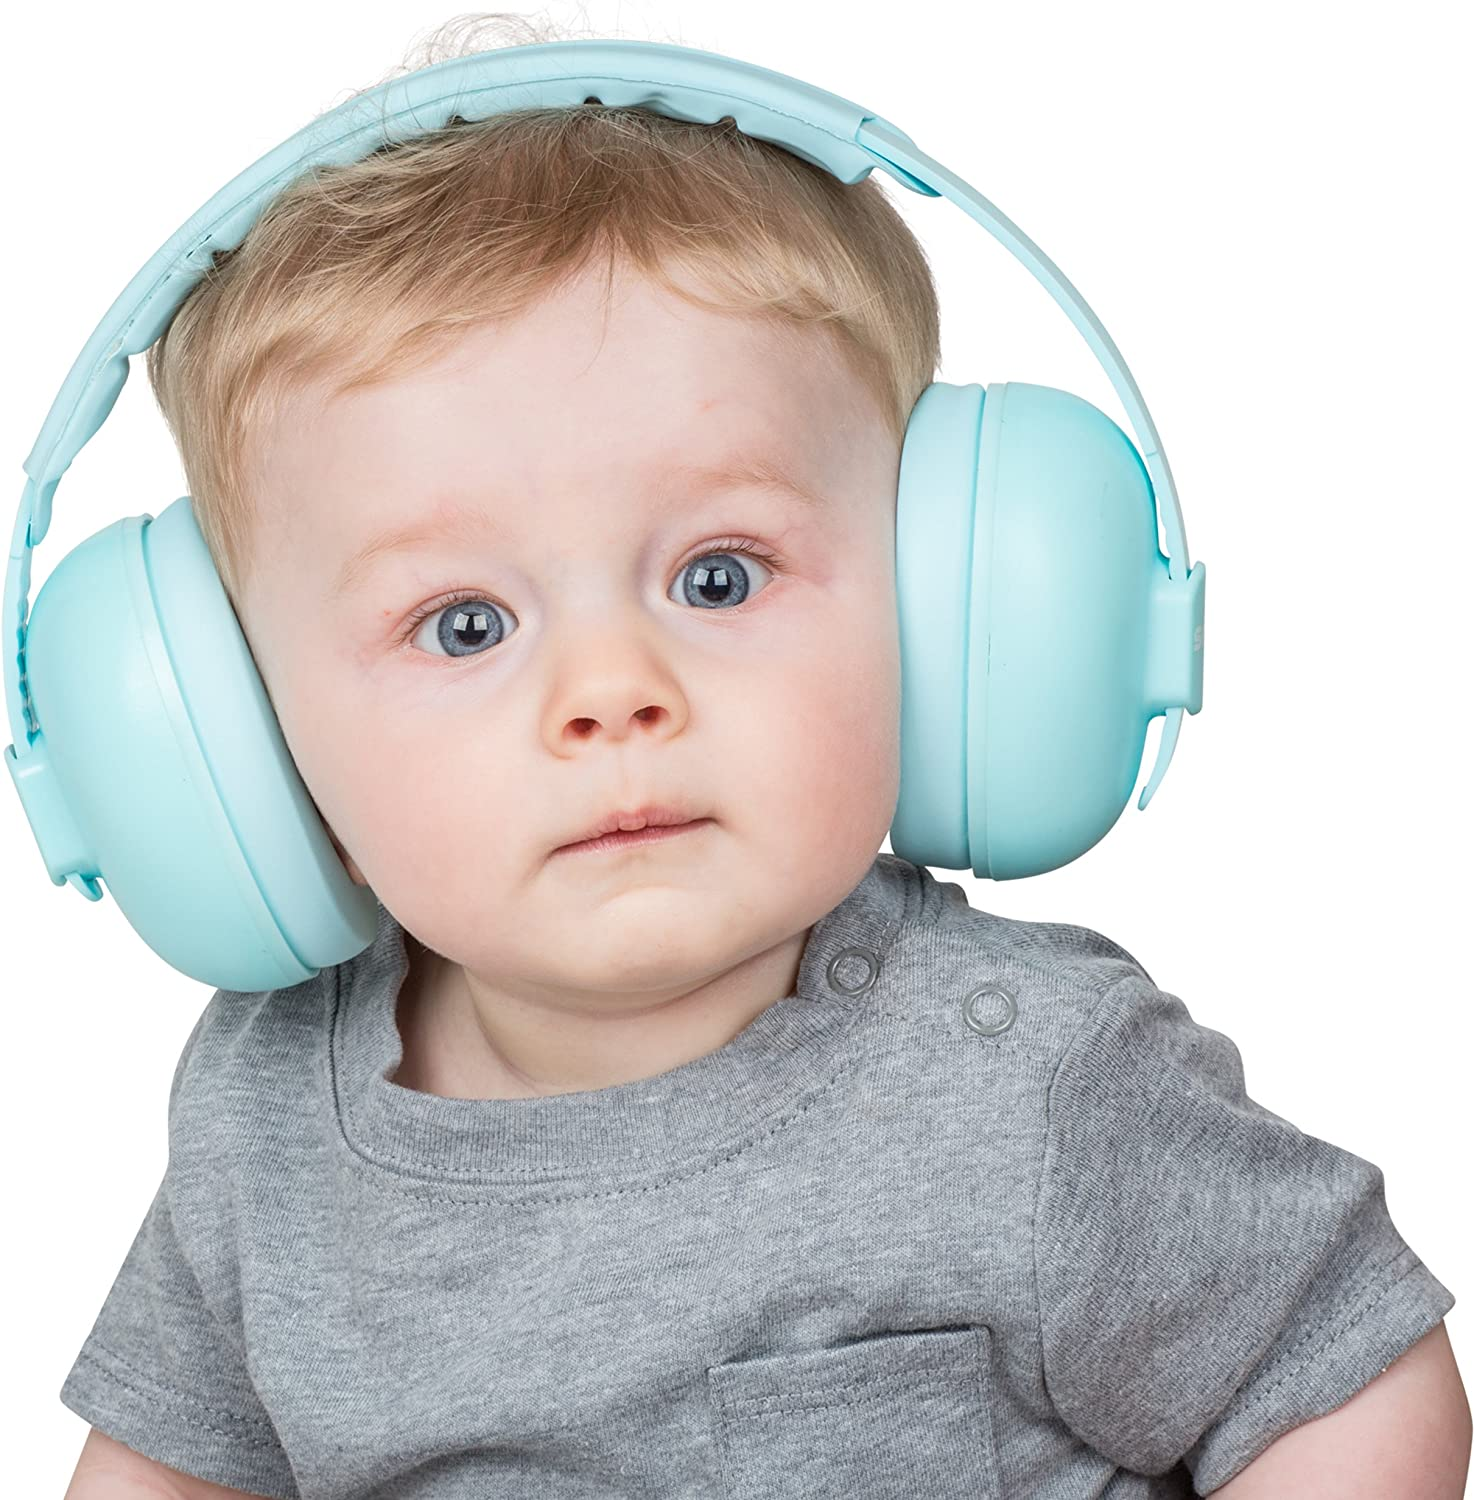 Snug Baby Earmuffs, Best Toddler & Infant Hearing Protection Ages 0-2+ Ear Protection for Babies